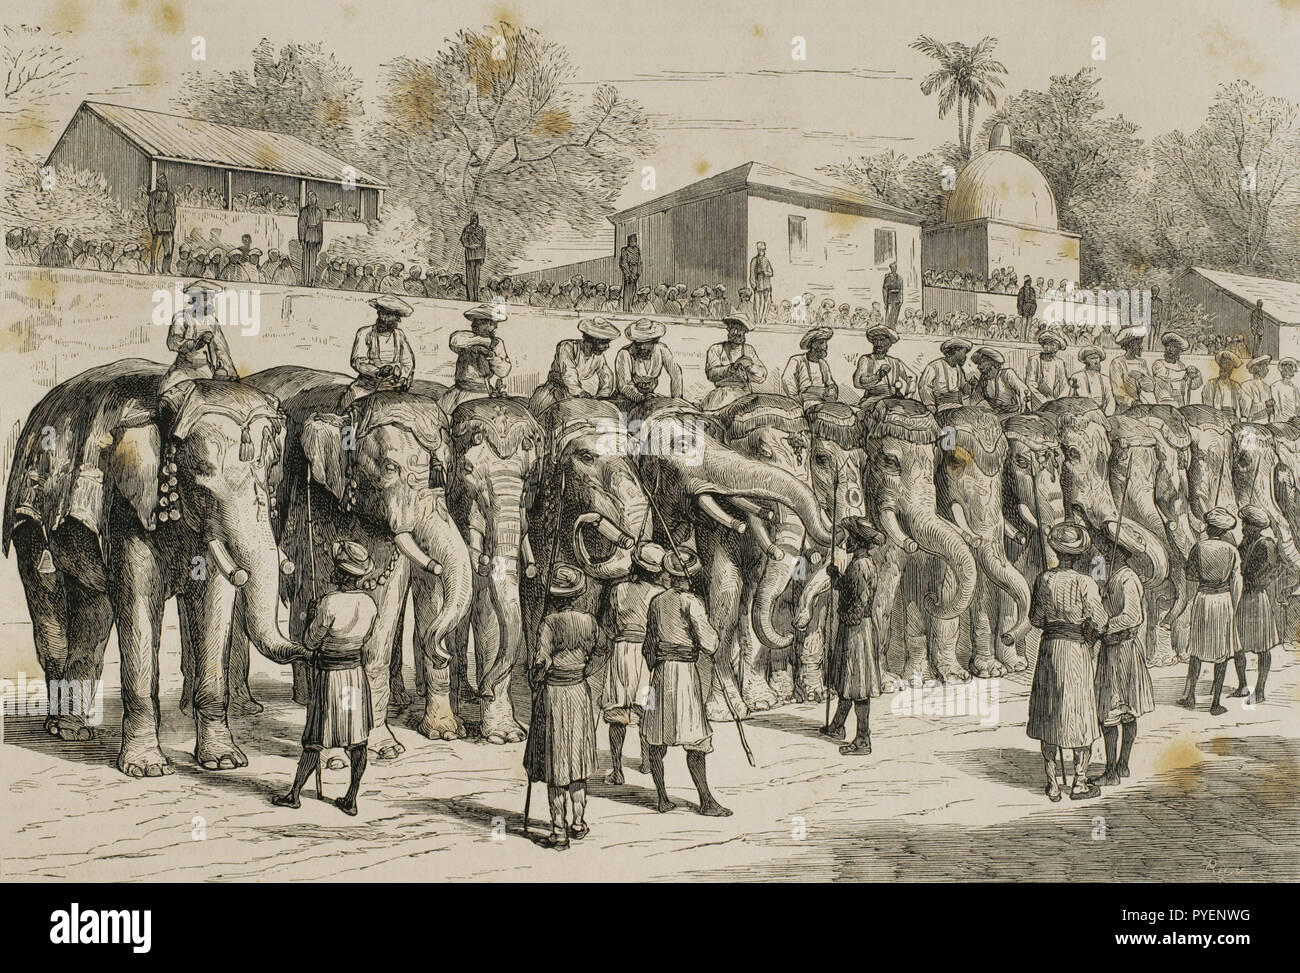 British colonialism. Journey of the Prince of Wales (1841-1910) to India. Later he would become the King Edward VII of the United Kingdom. Review to the elephants of Guicowar in honour to the Prince. City of Baroda or Vadodara. Engraving by Rico. La Ilustracion Española y Americana, January 22 of 1876. - Stock Image